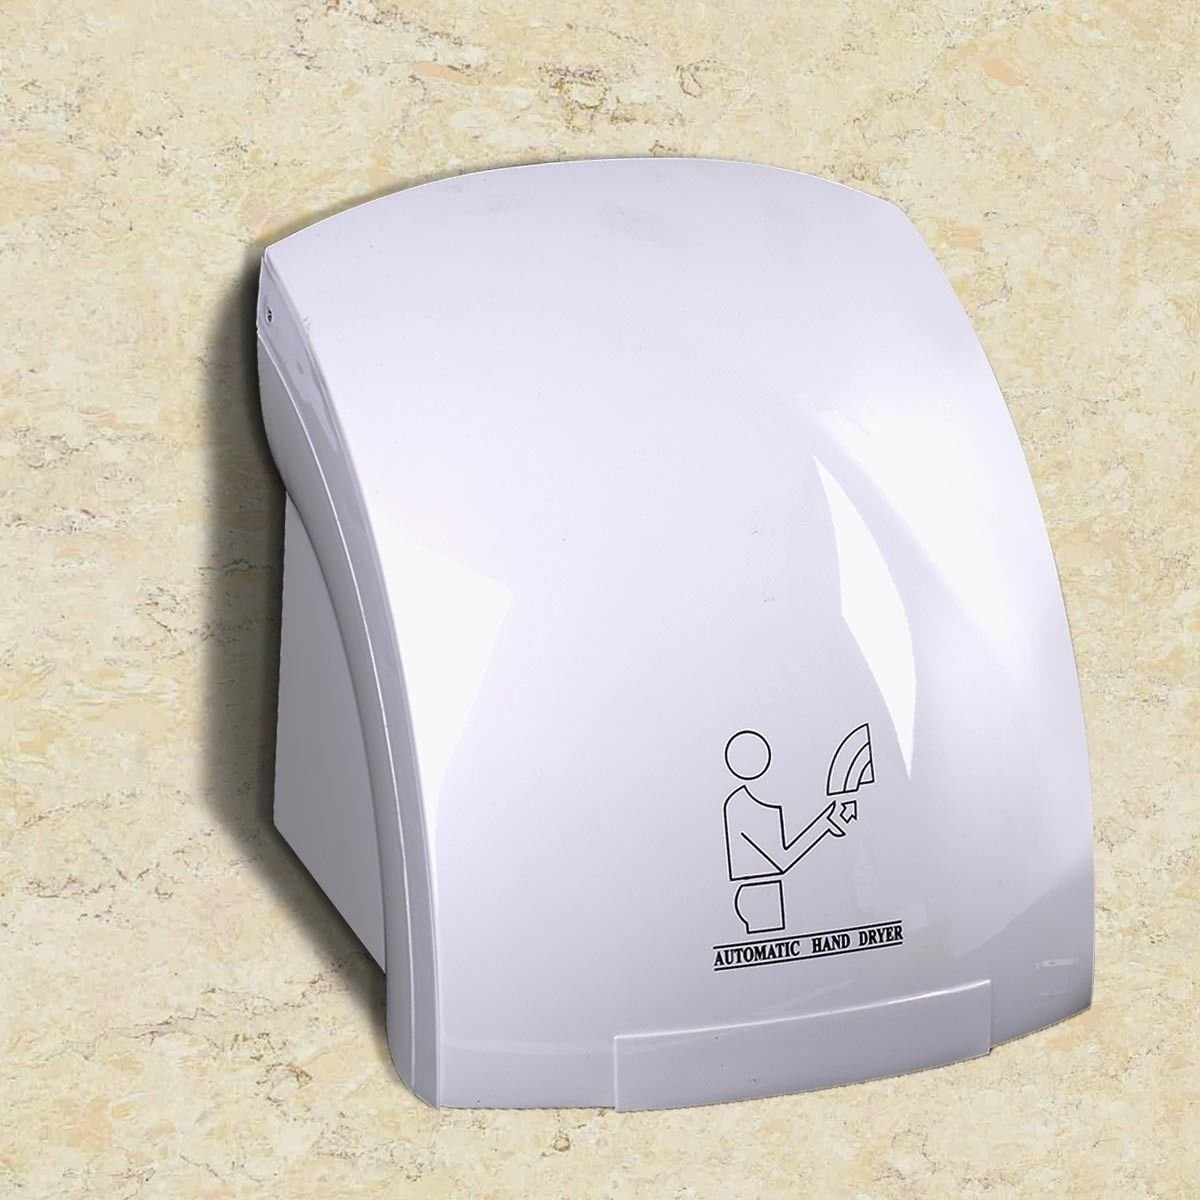 Household Hotel Automatic Infared Sensor Hand Dryer Bathroom Hands Drying Device Shockproof Strengthened Casing Easy Installation And Operat Wall Outlet Brand New